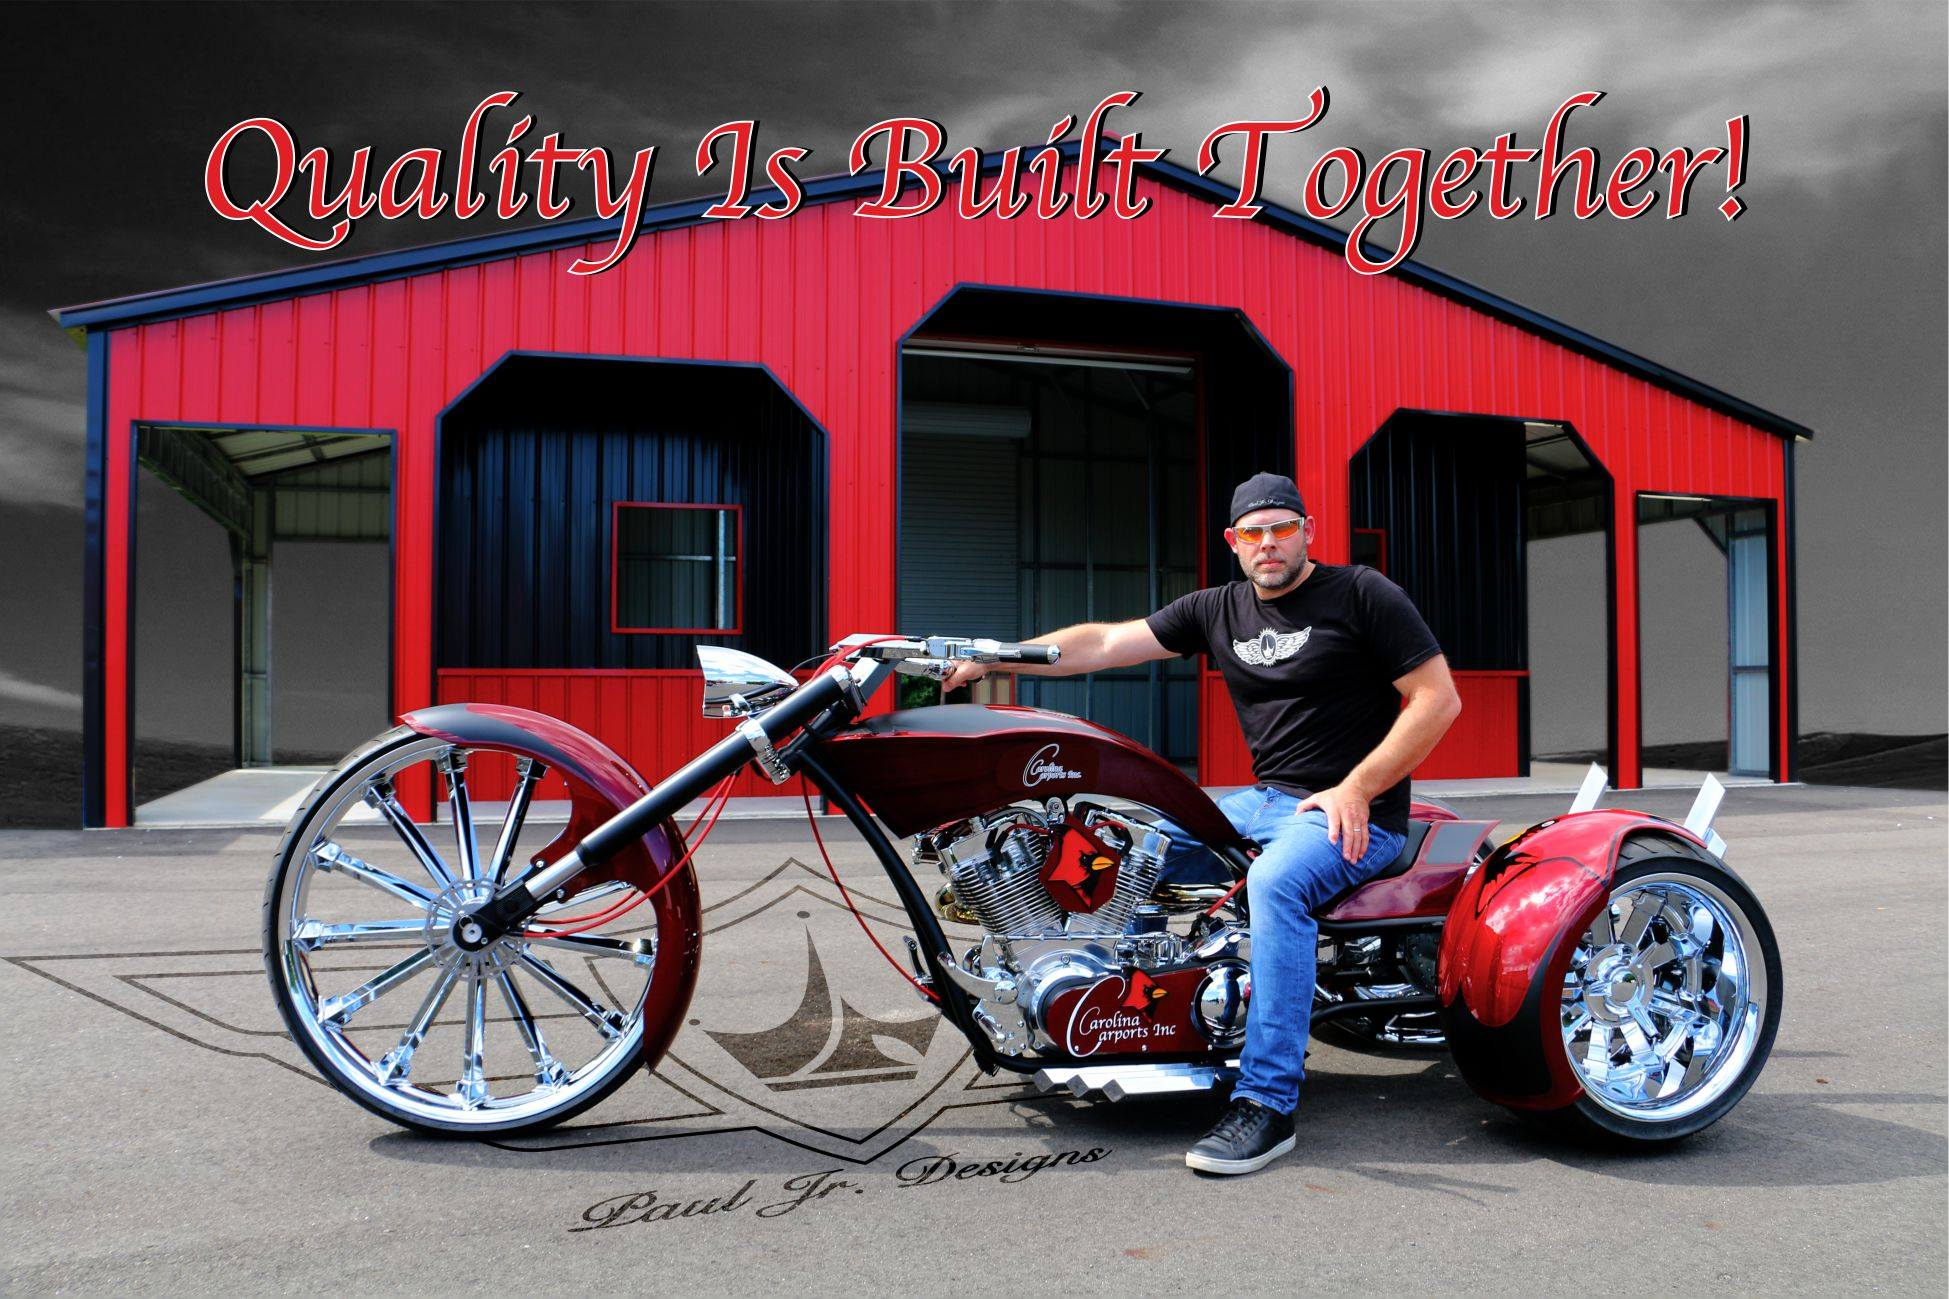 9b2f0715f36 The custom trike was the second project between the Carolina Carports, Inc.  and Paul Teutul Jr of Paul Jr Designs. The trike unveiling took place on  June 23 ...